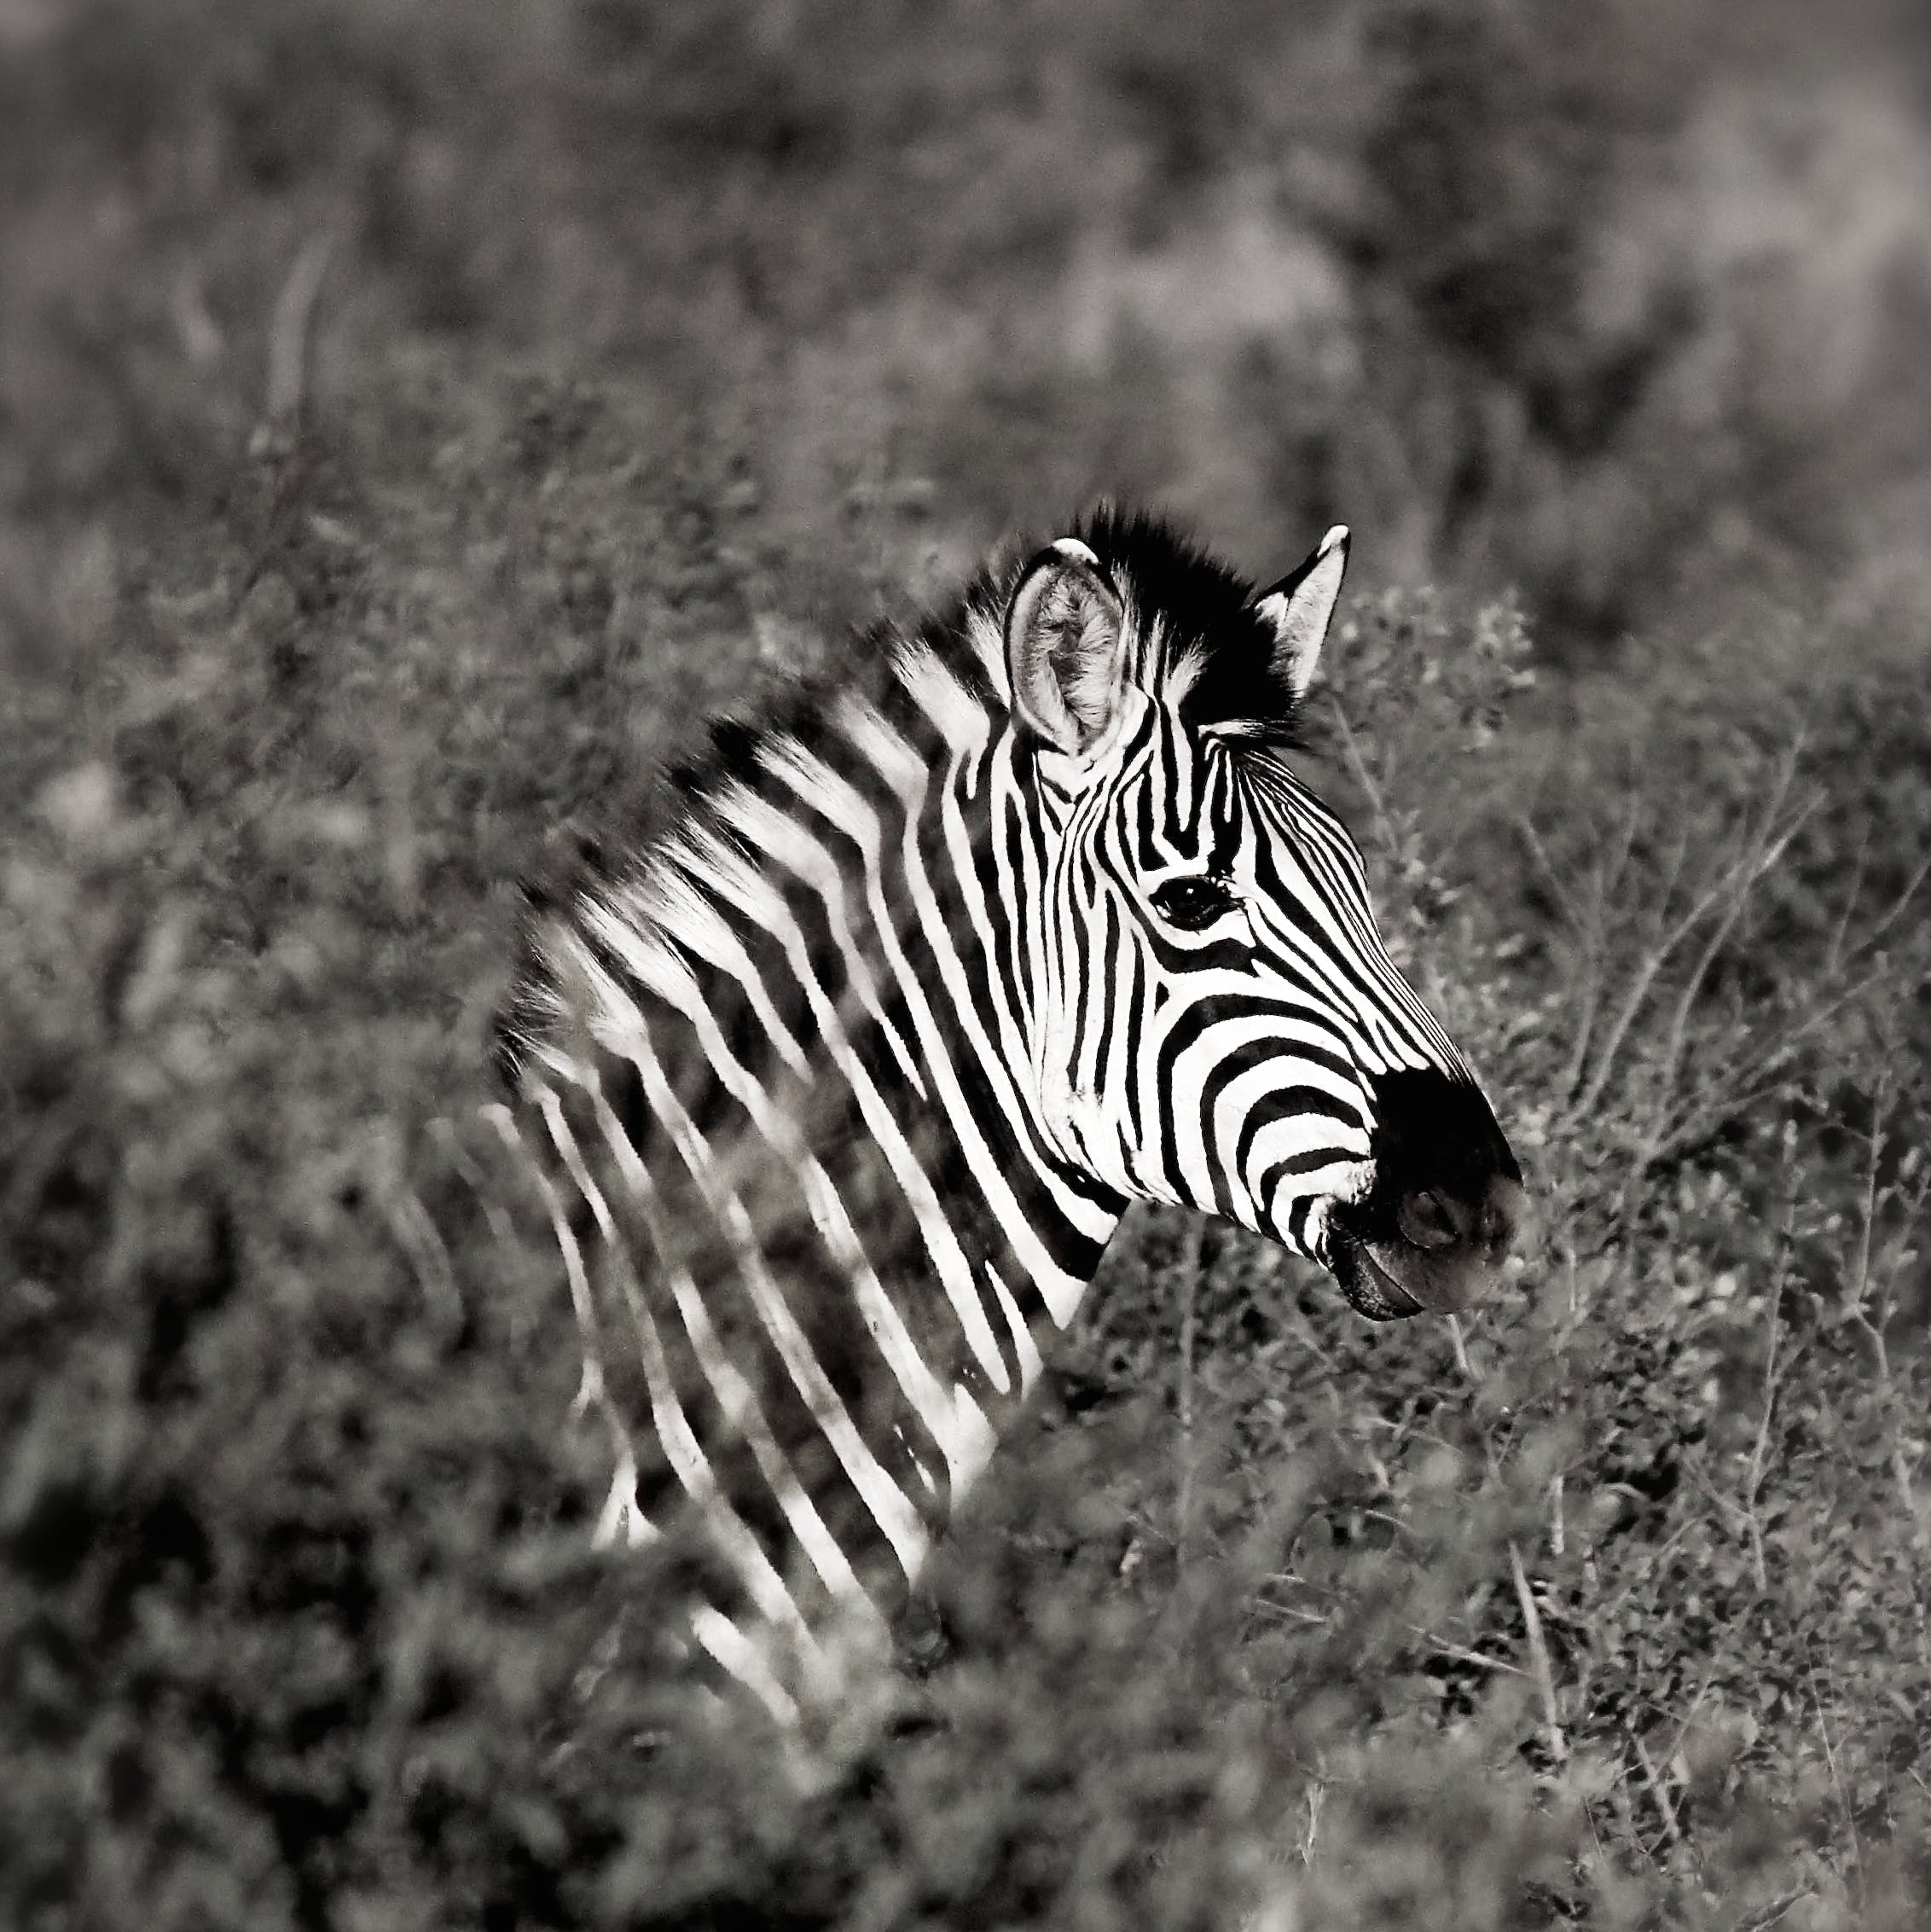 Monochrome Photography of Zebra